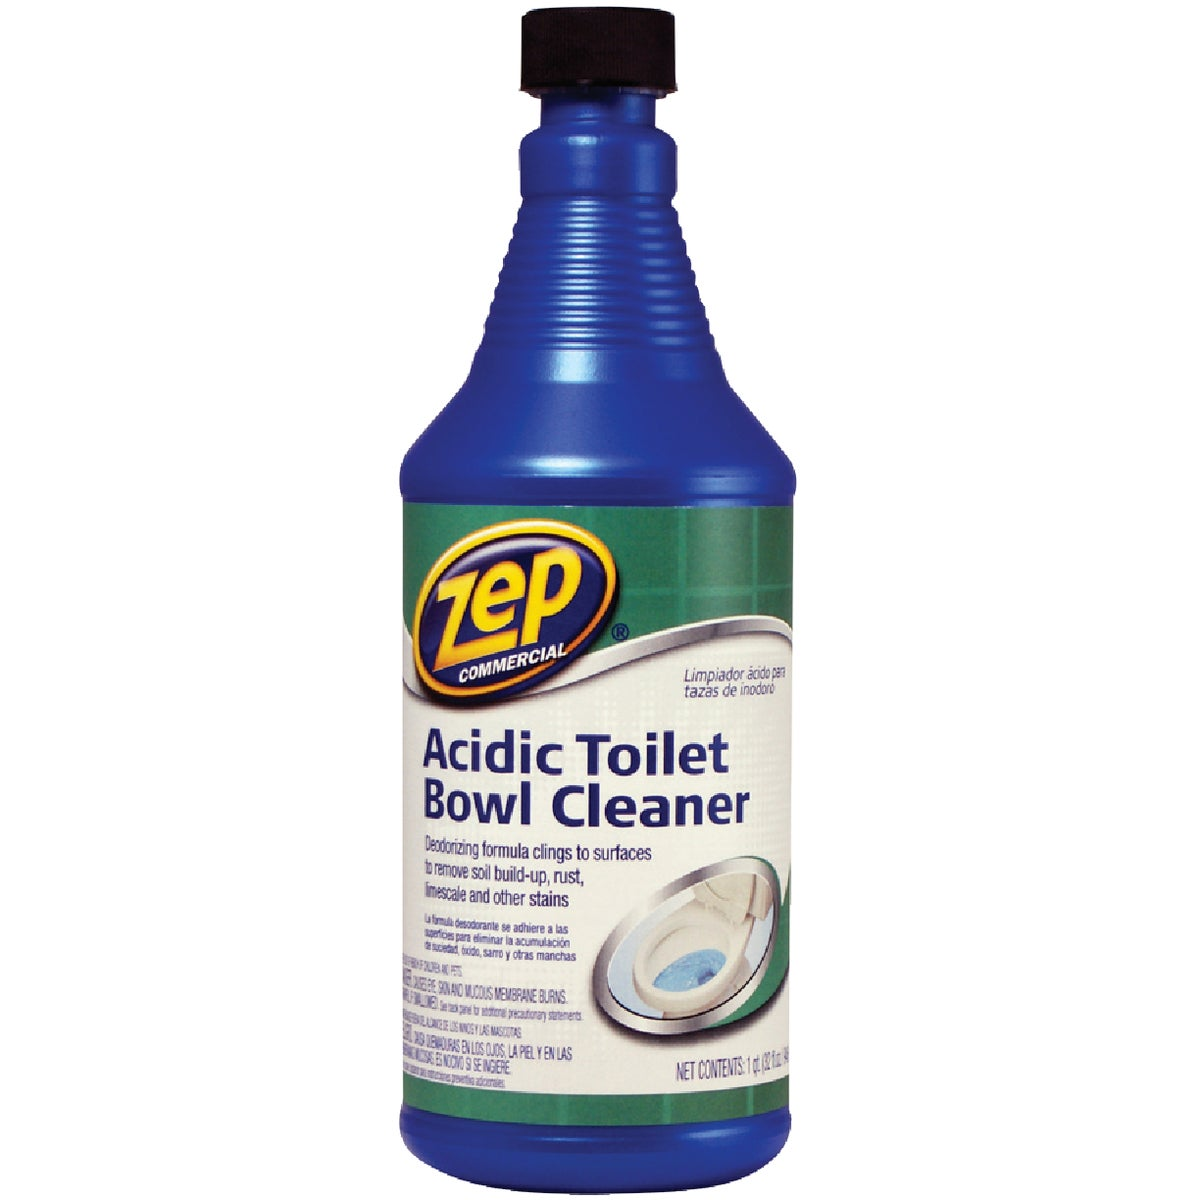 32OZ TOILET BOWL CLEANER - ZUATB32 by Zep Enforcer Inc